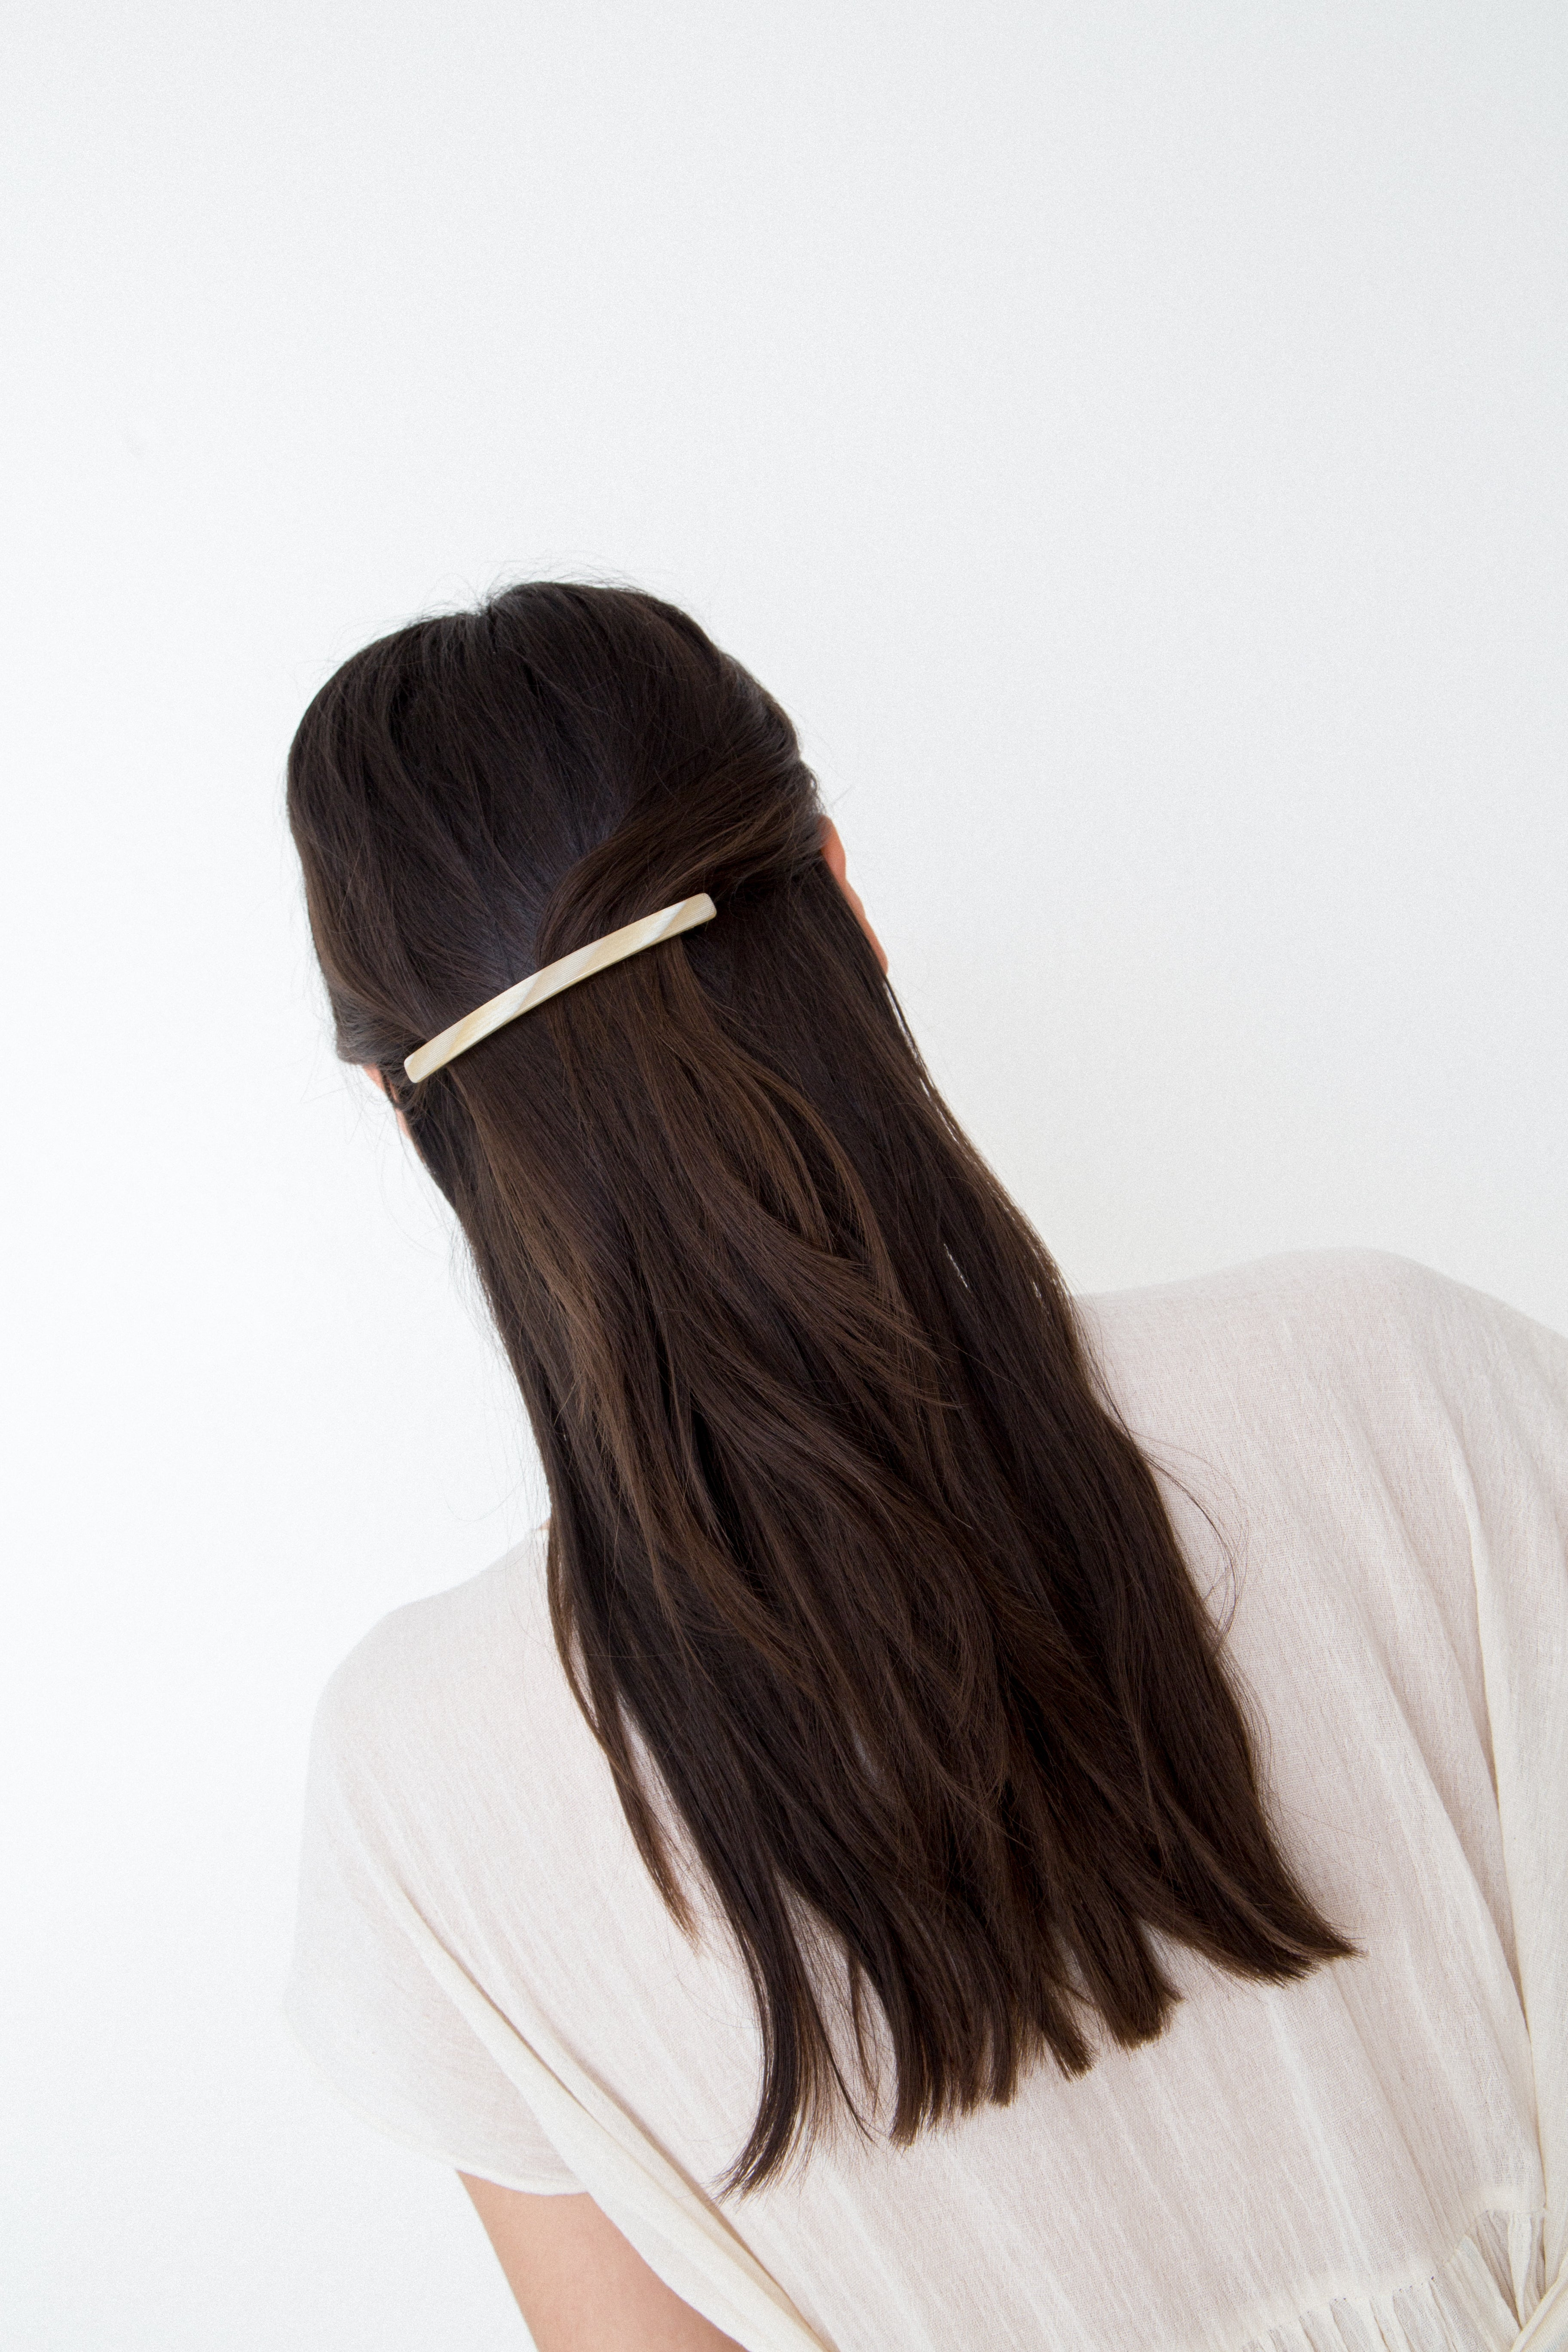 French barrette